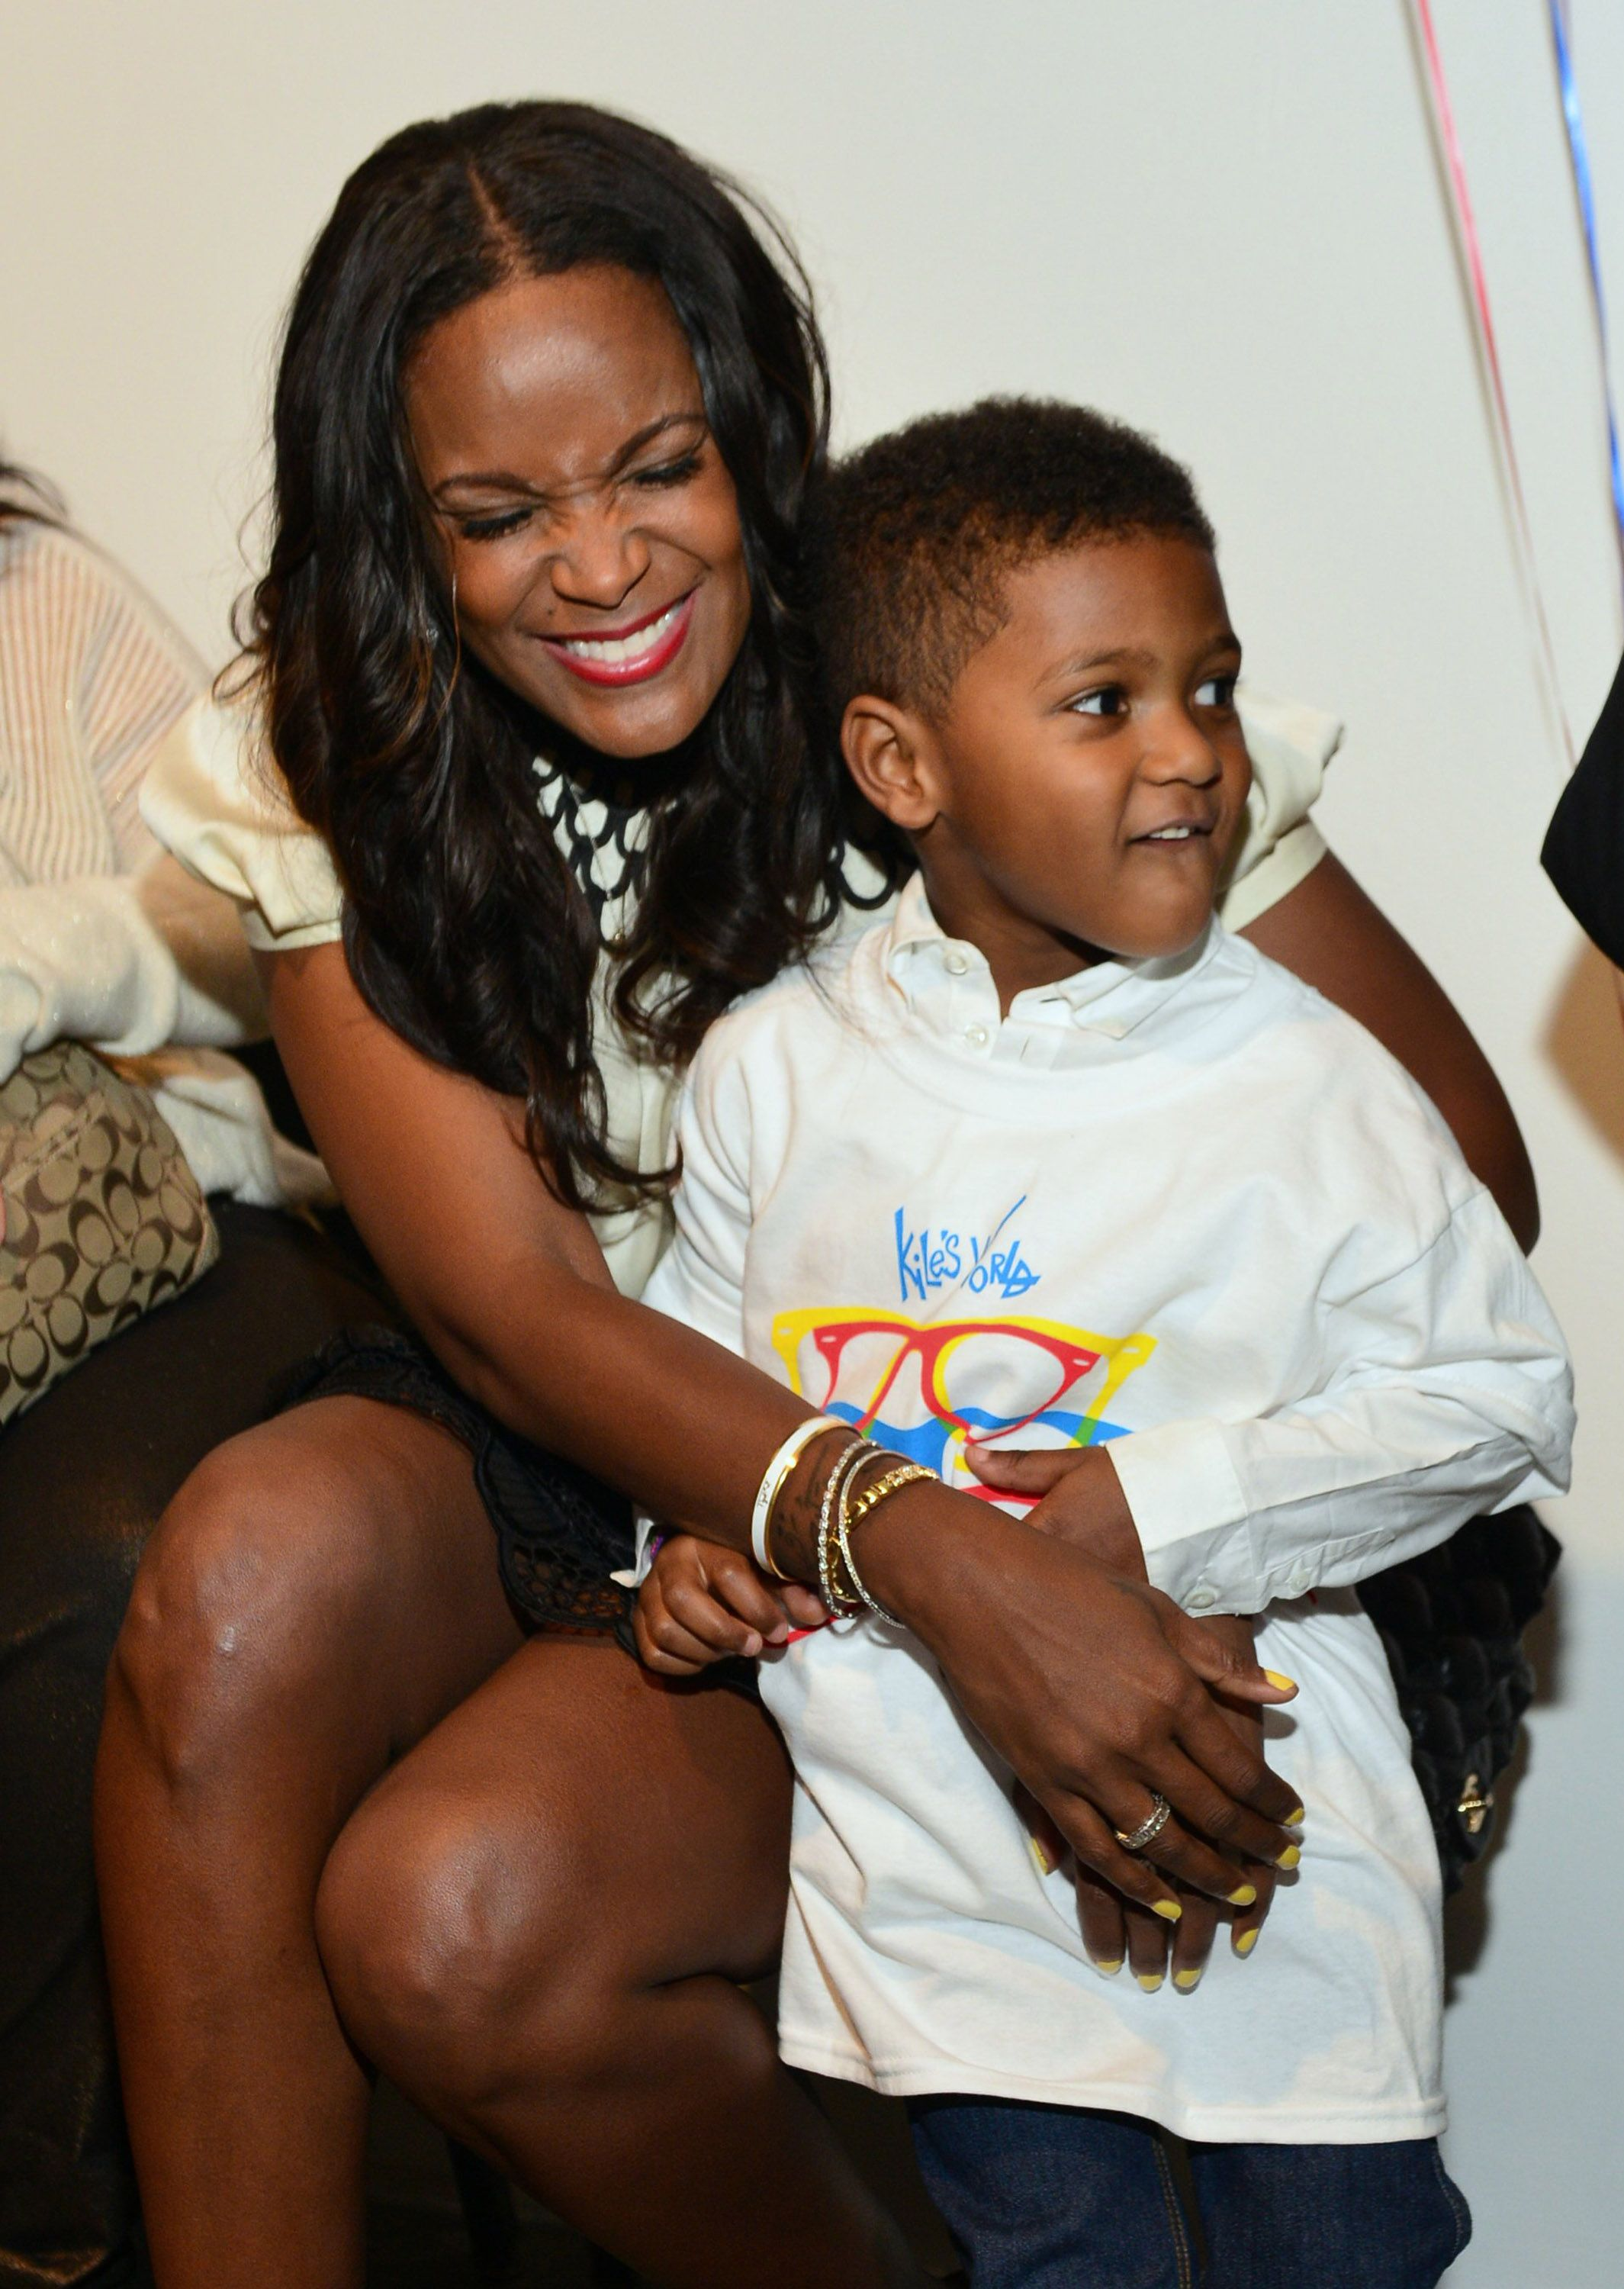 Tameka Foster and Naviyd Raymond during the birthday and foundation lanuch Kile's World to honor Kile Glover at the Woodruff Arts Center on March 29, 2013 in Atlanta, Georgia. | Source: Getty Images